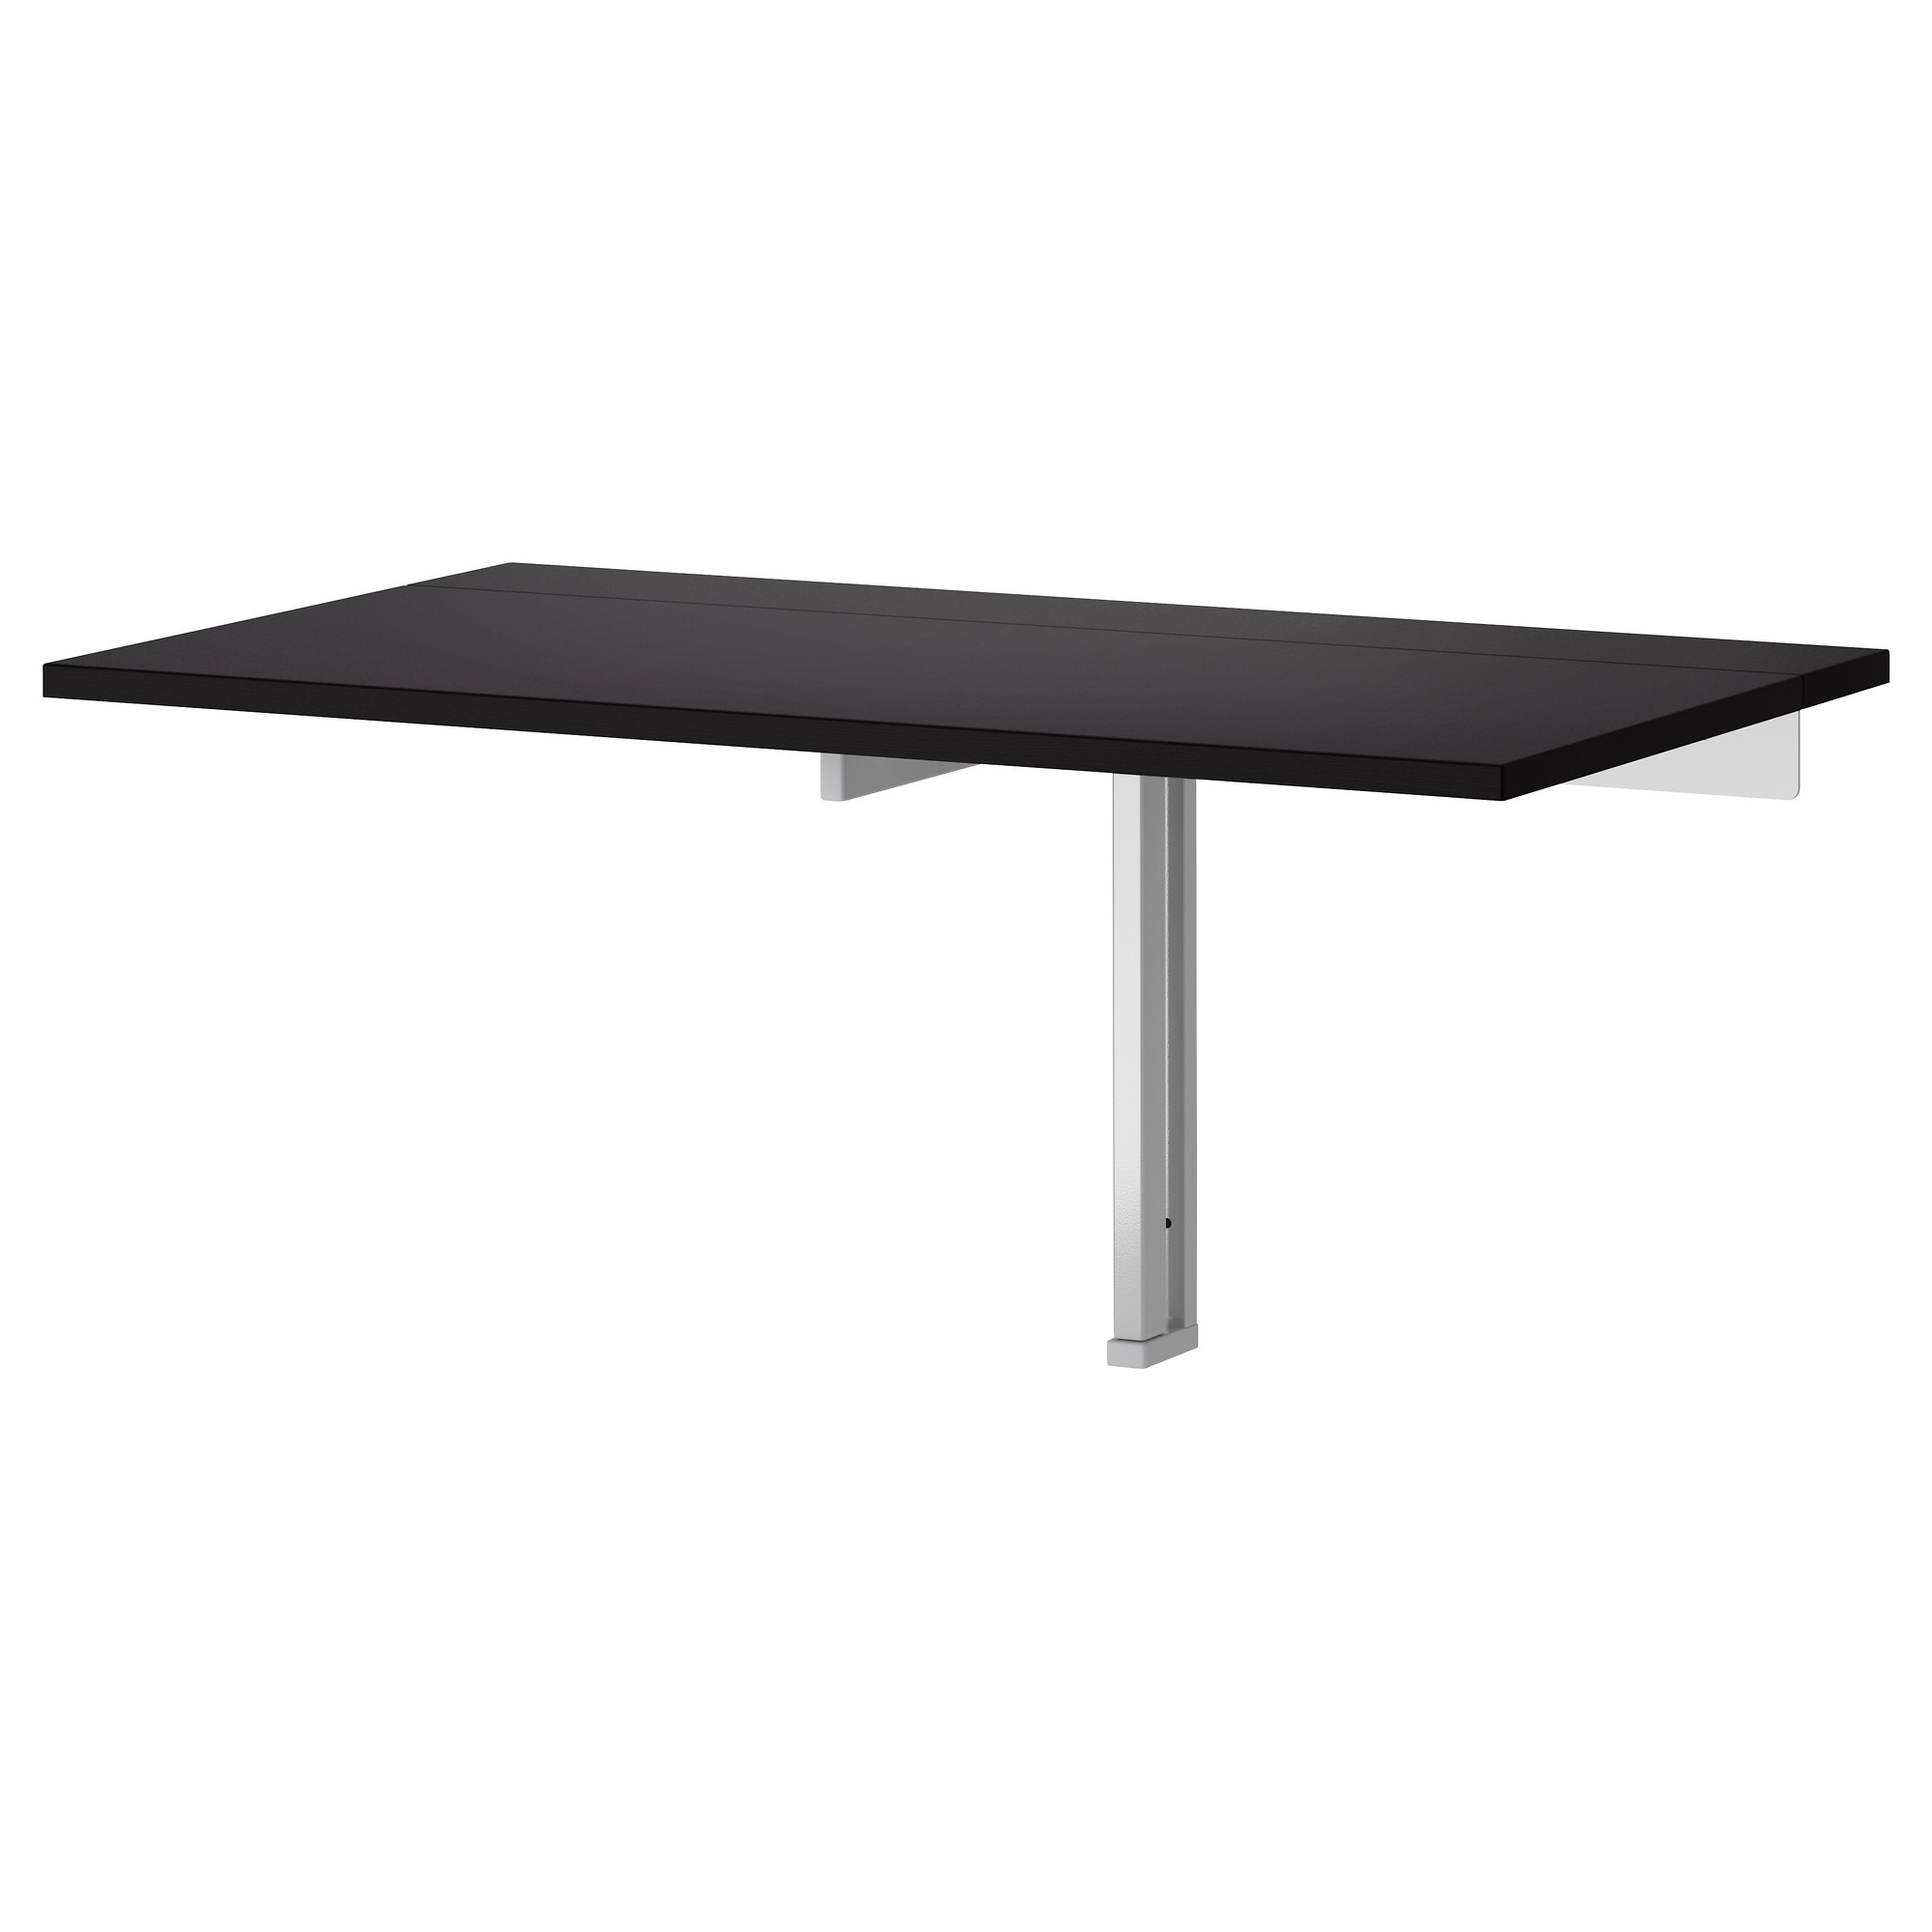 Exceptionnel BJURSTA Wall Mounted Drop Leaf Table   IKEA